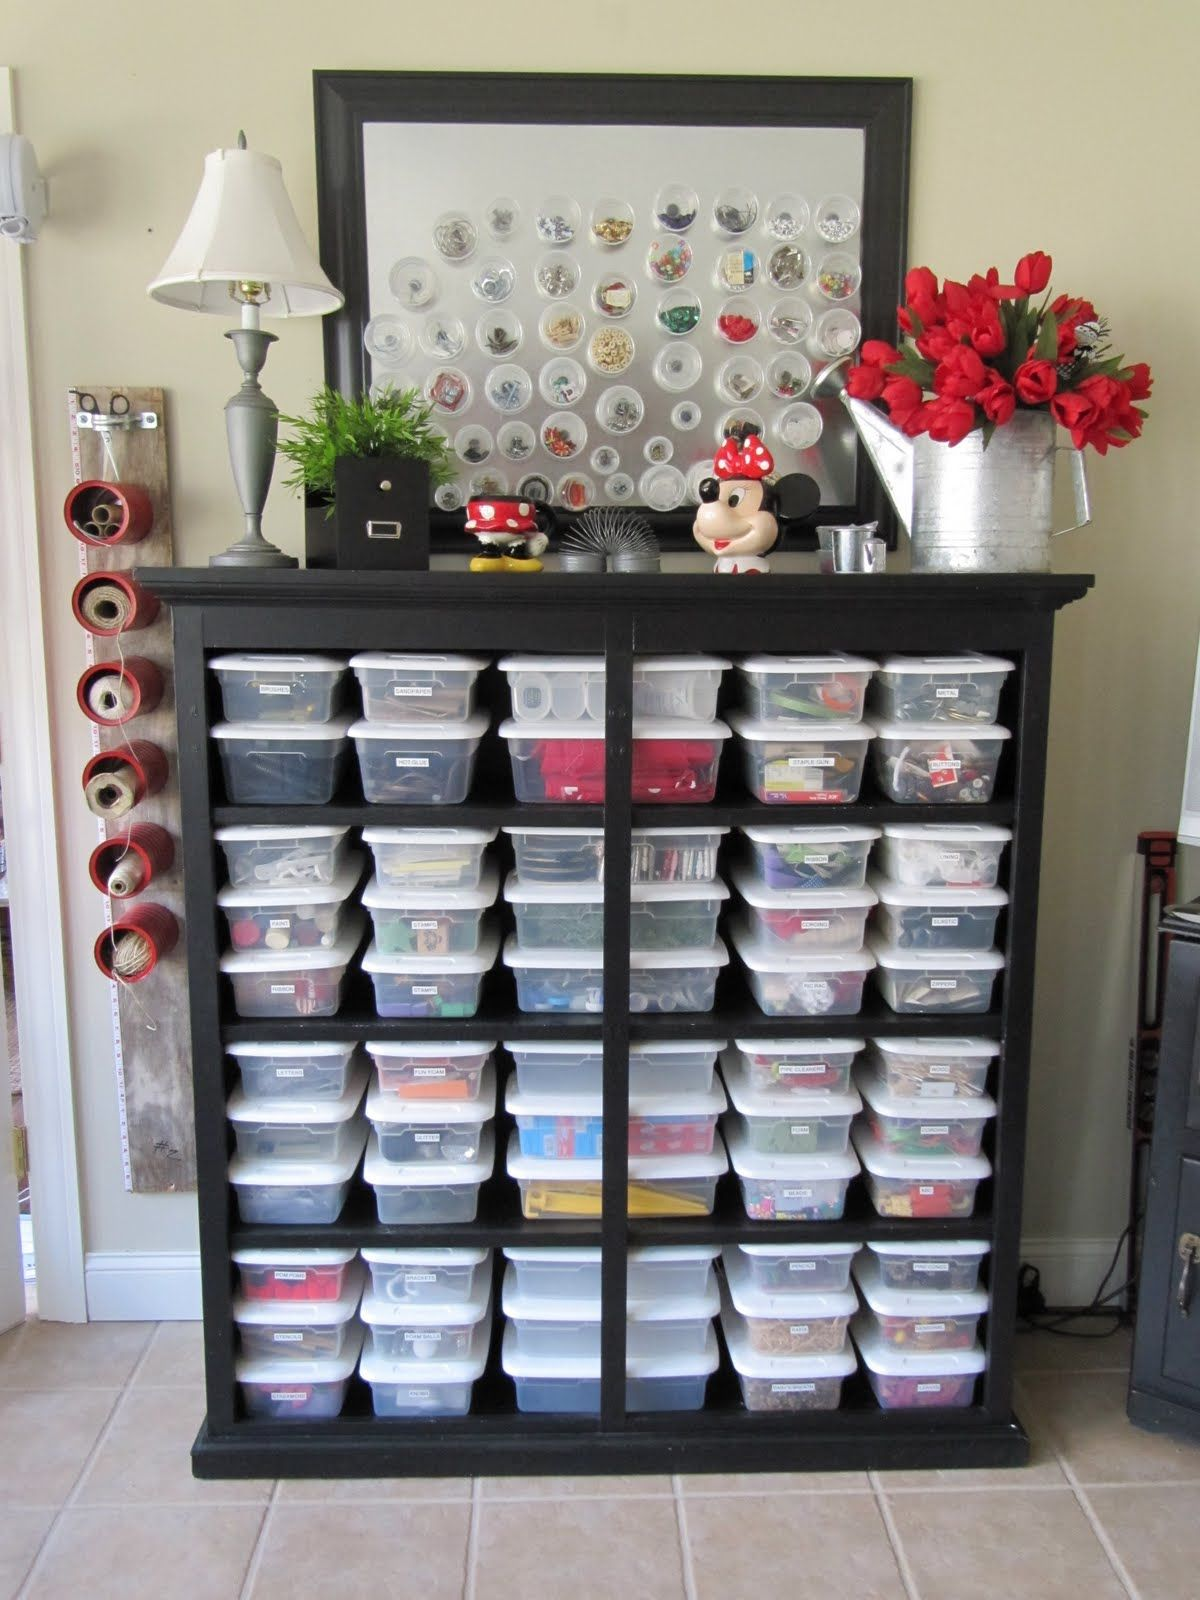 Inexpensive Kitchen Storage Ideas storage ideas using repurposed finds | storage ideas, repurposed